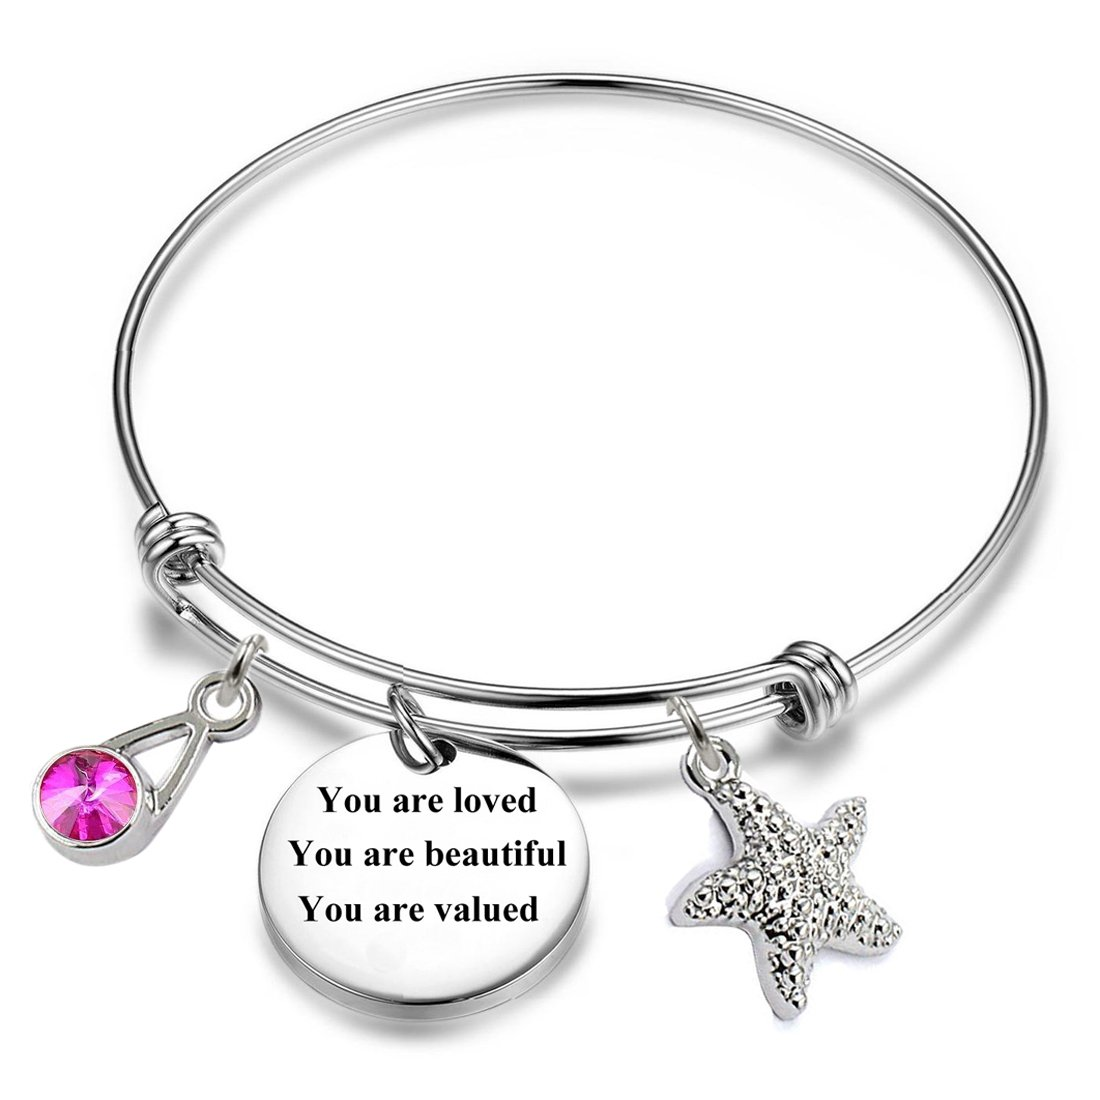 12 Months Birthstones Positive Inspirational Birthday Gifts Charm Bracelets. (October-You are loved You are beautiful You are valued)